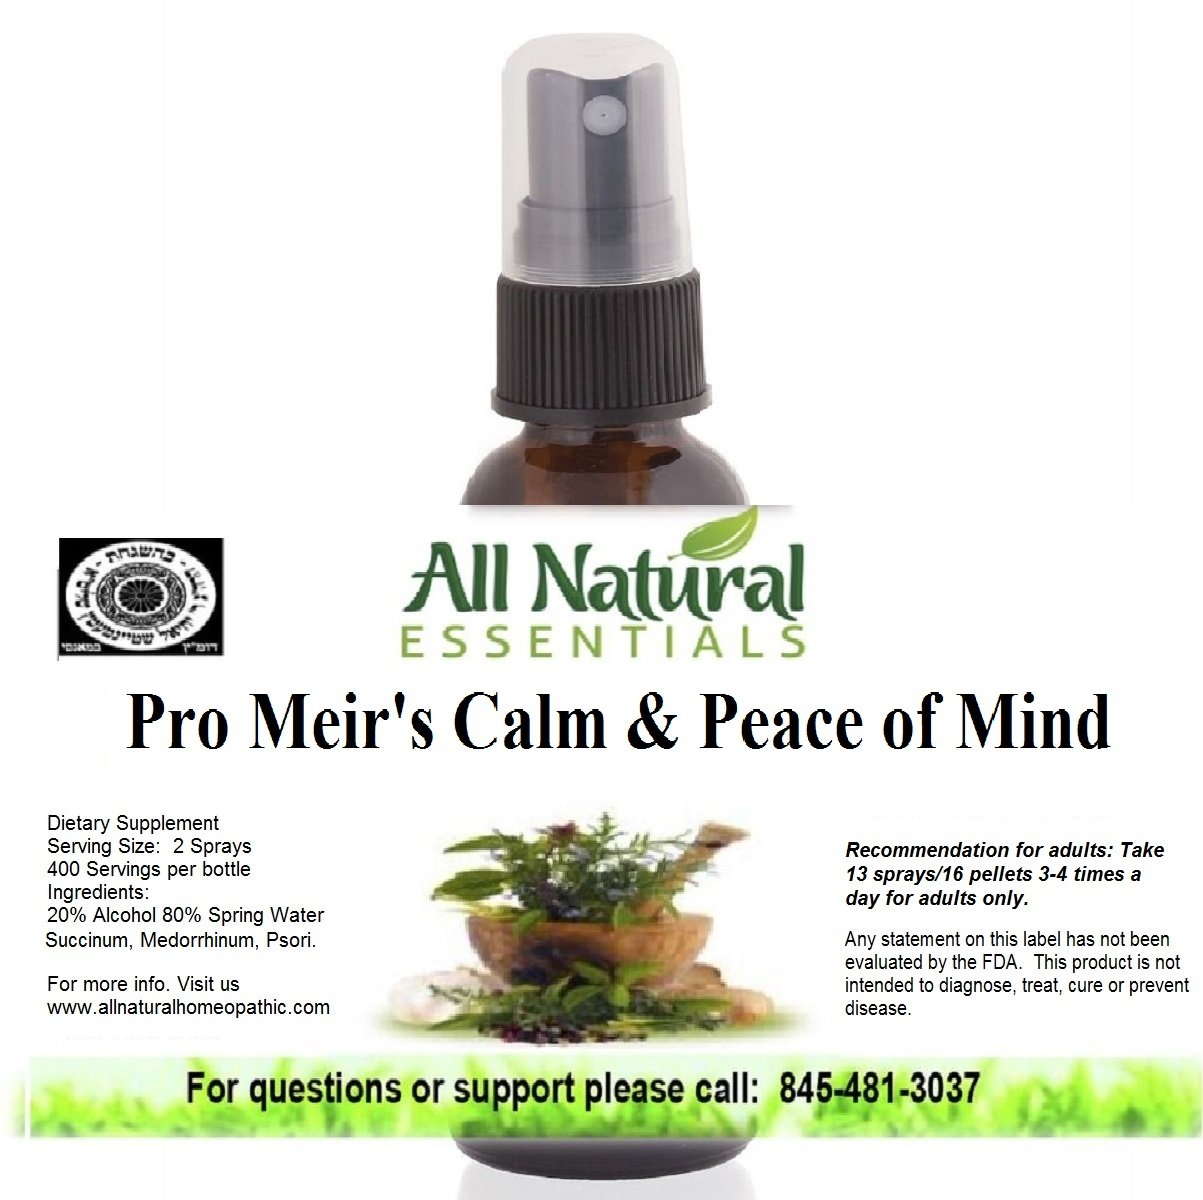 Pro Meir's Calm & Peace Of Mind 1oz Homeopathic Remedy, Natural Calm, Anti Stress, Relaxes Mind, Calms, Mood Lift, Reduces Anxiety, Stress Support, Increase Focus, Keeps Minds Relaxed & Focused,kosher